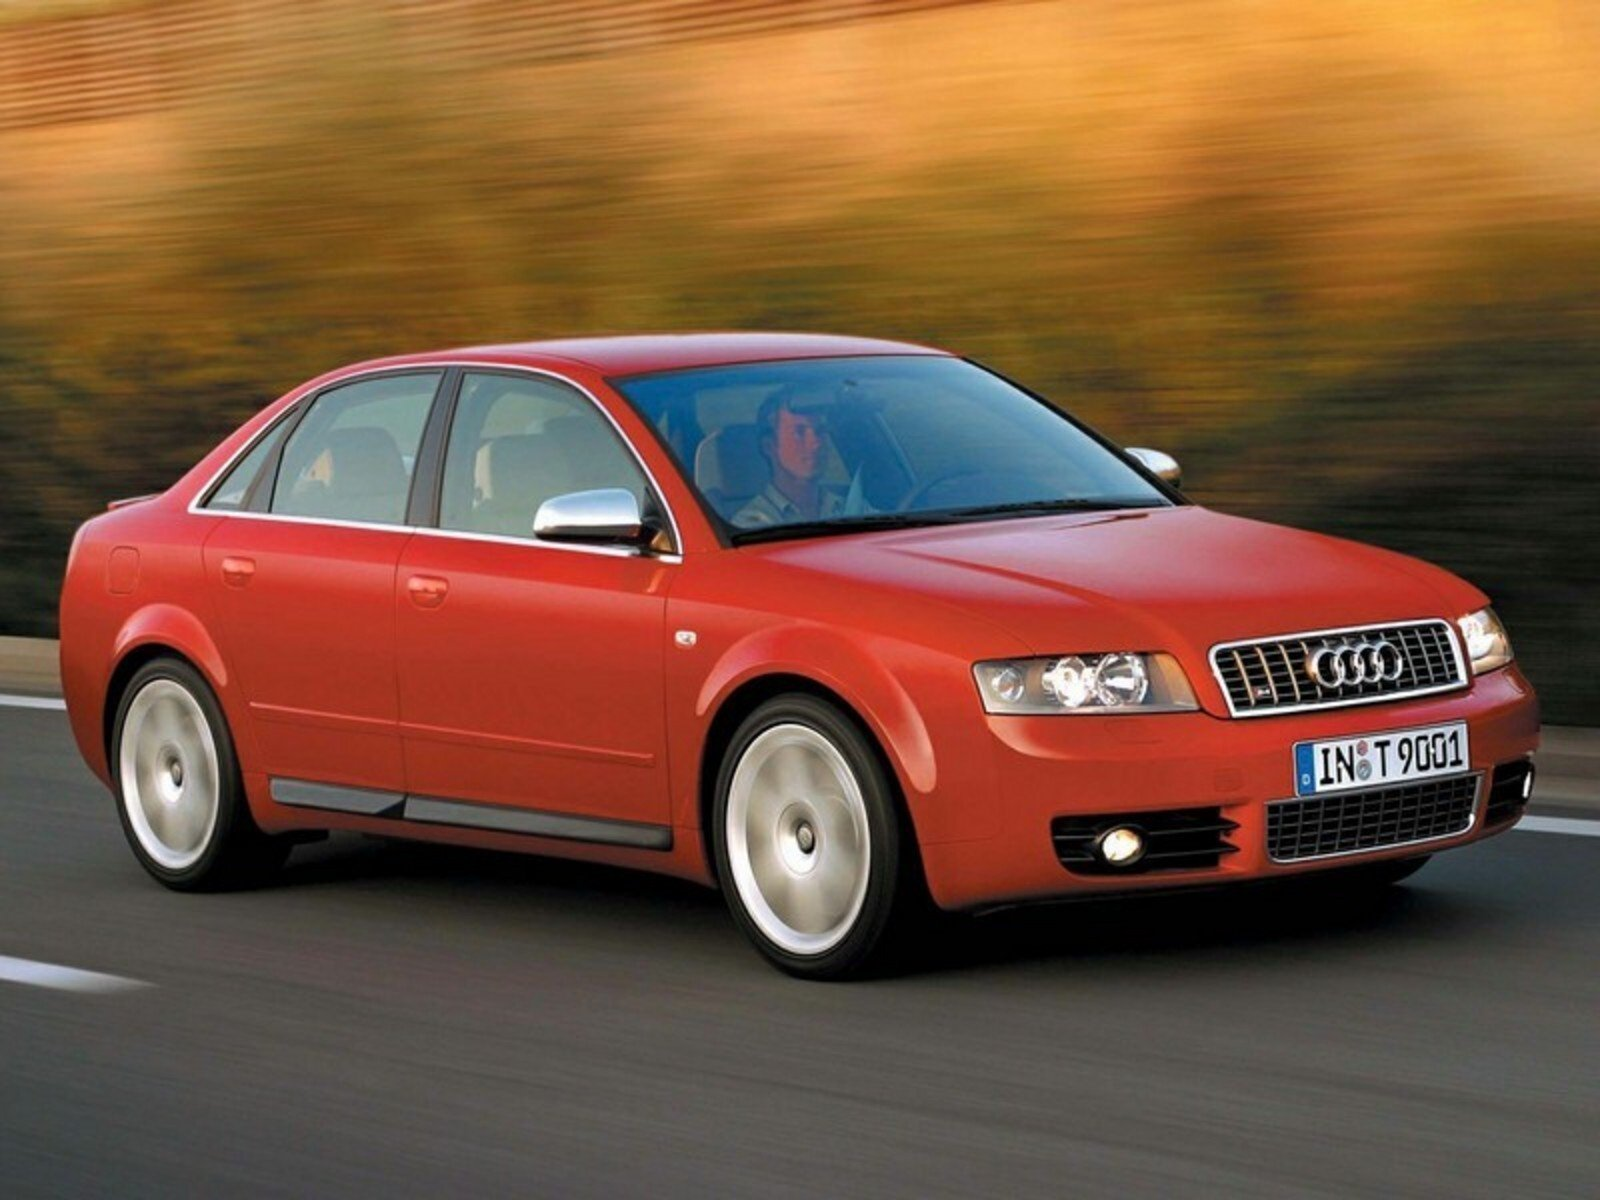 Audi S4 0 60 >> 2003 - 2005 Audi S4 Review - Top Speed